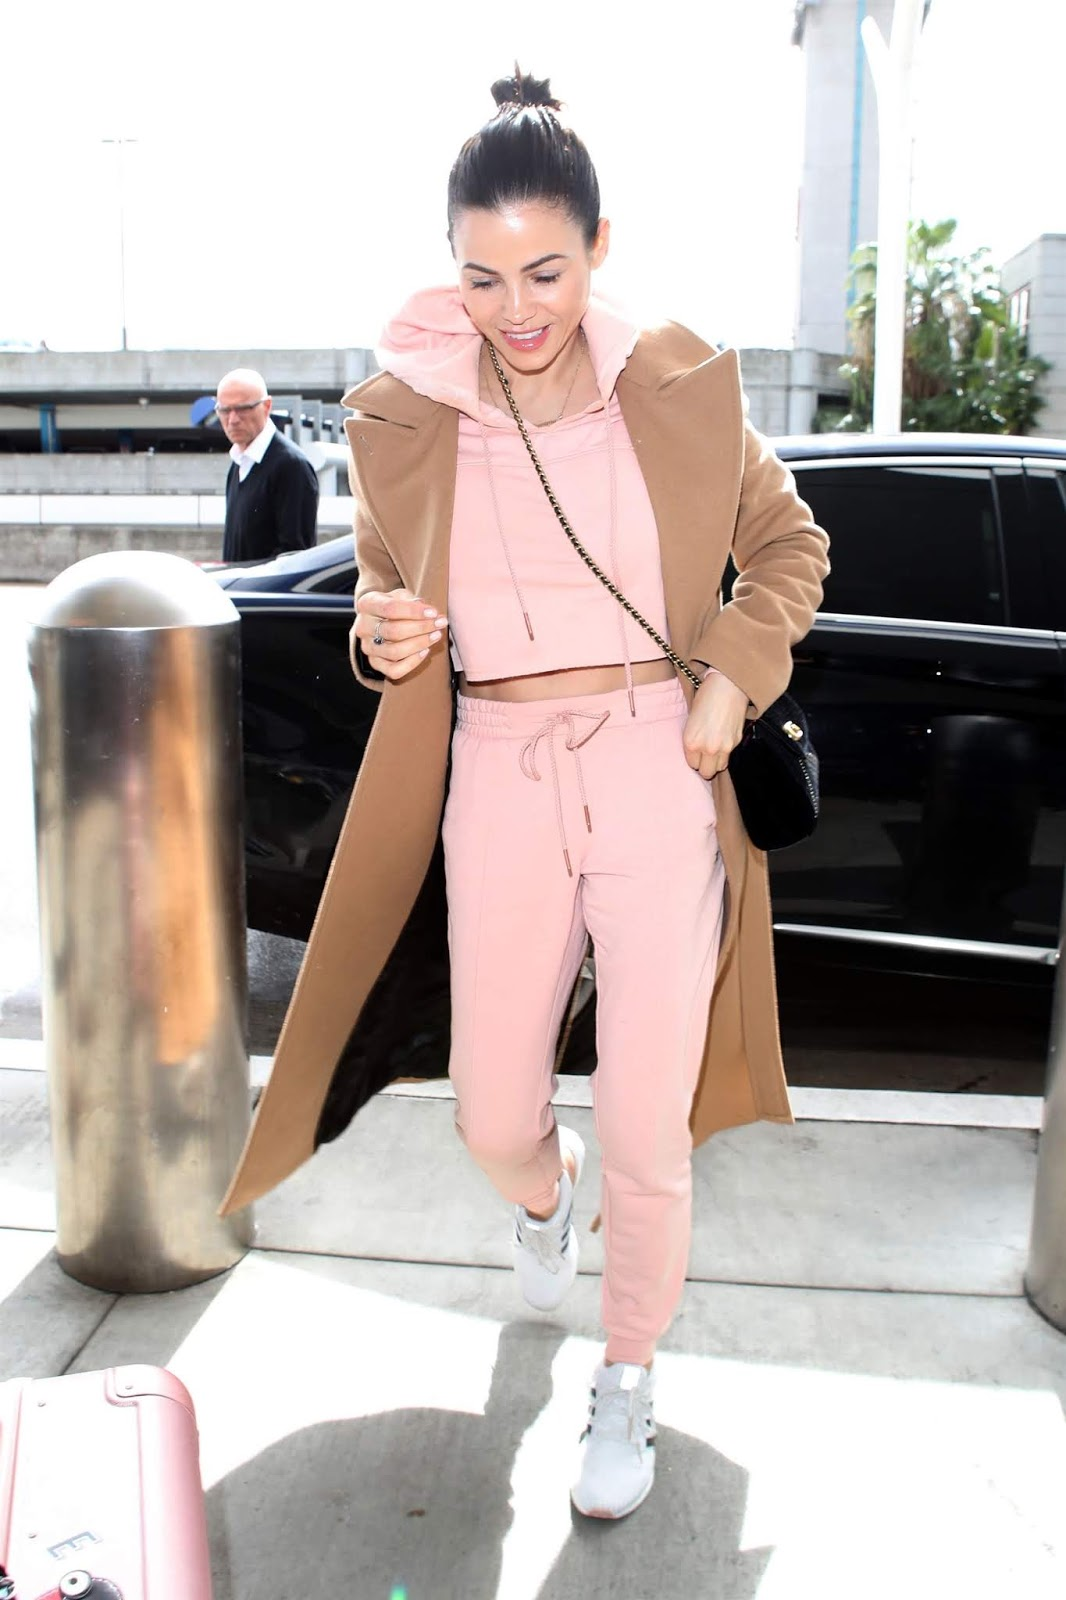 Jenna Dewan gets ready to fly high in Los Angeles - 02/05/2019